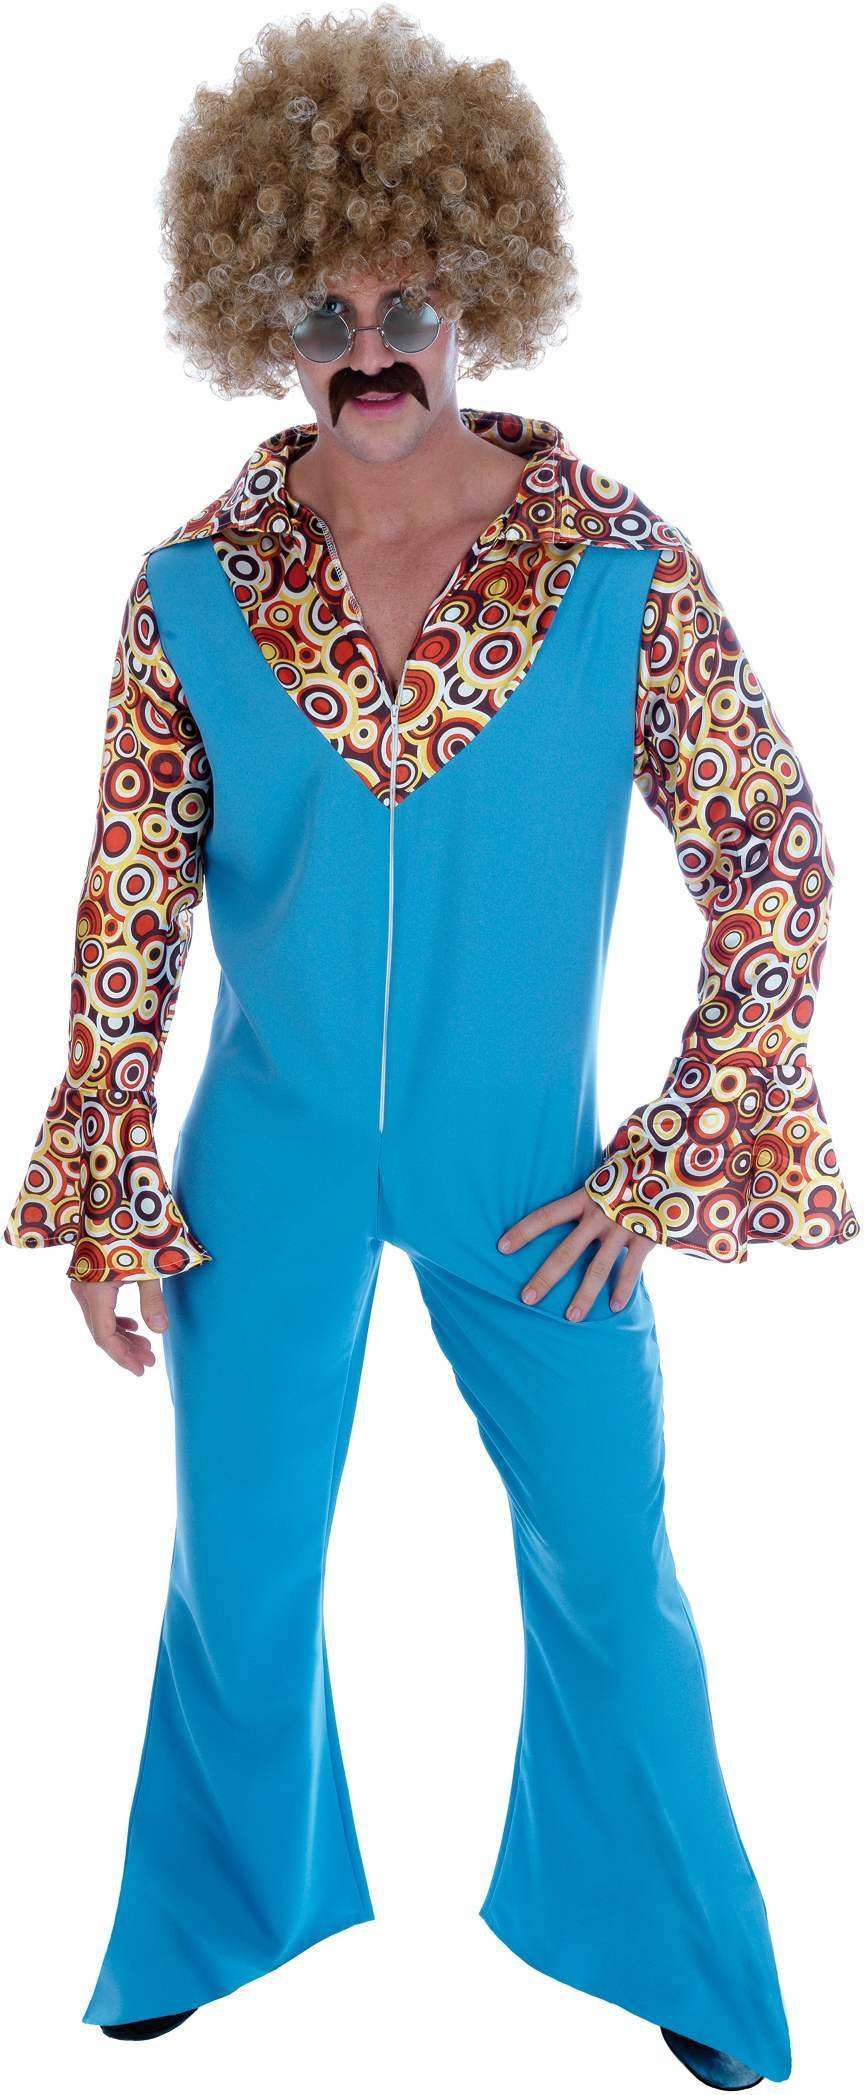 Groovy Male Disco Dancer / Tash Fancy Dress Costume (1970S)